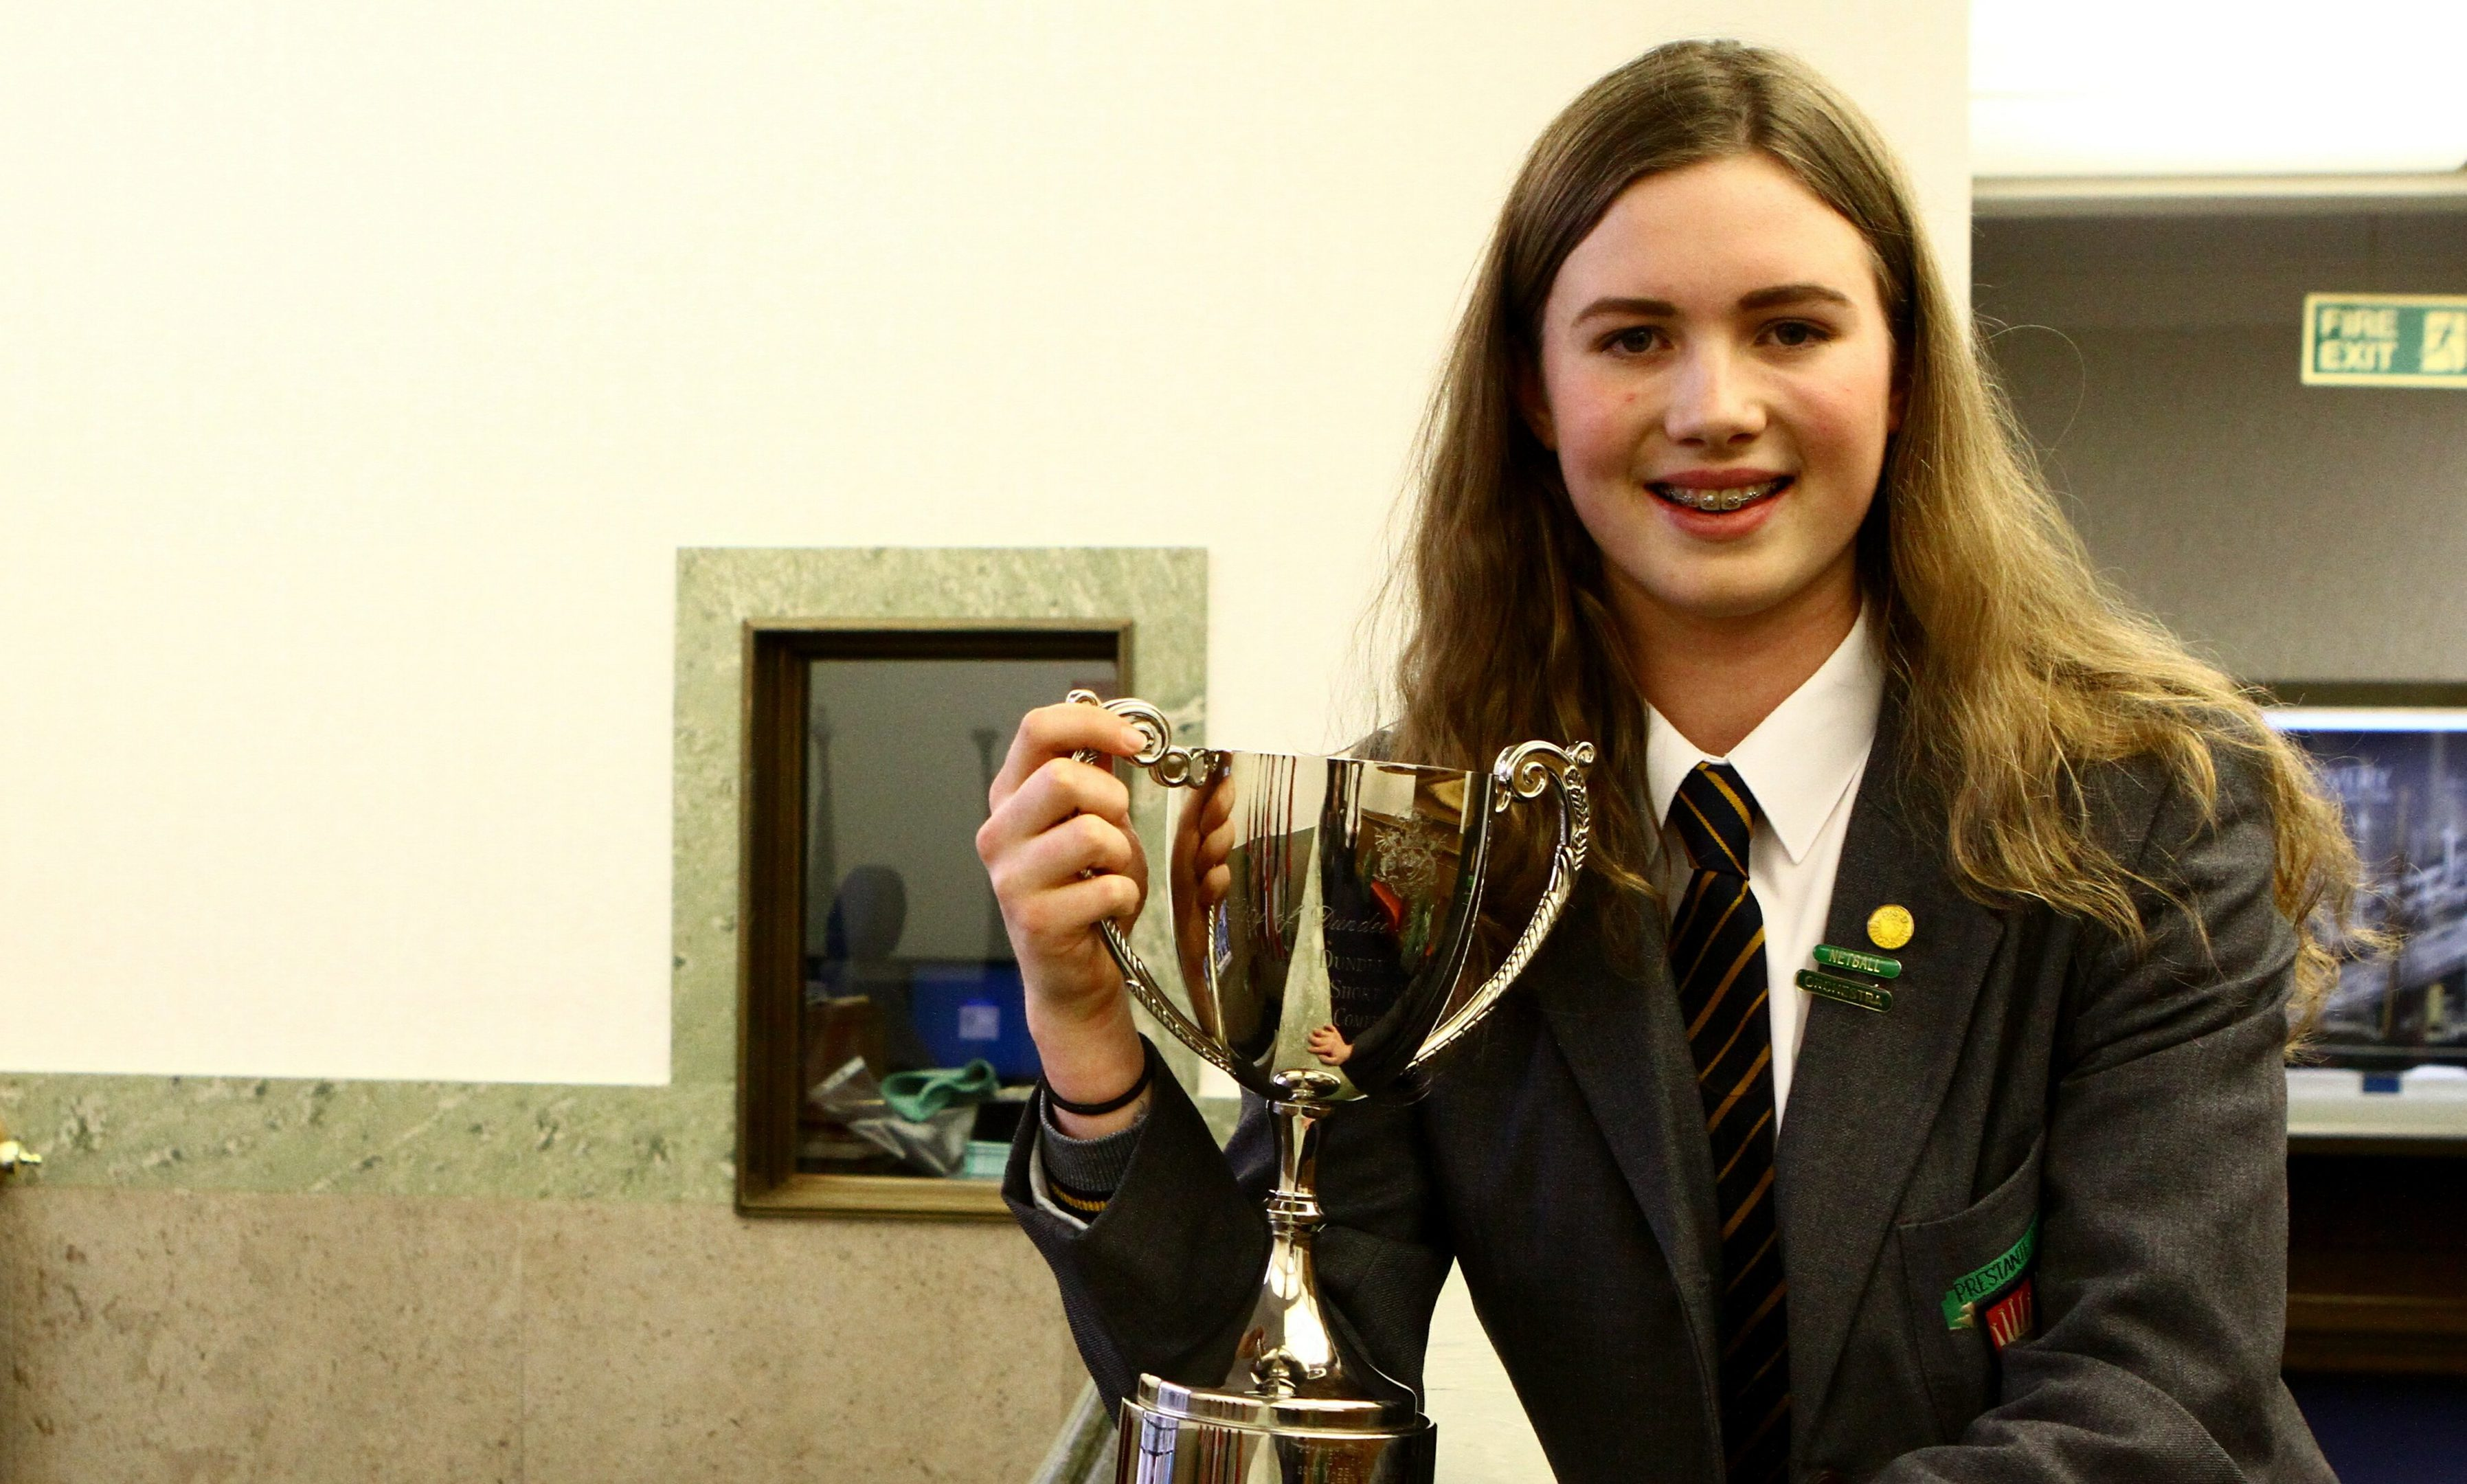 Winner of the Burgess Short Story Competition, Emily Baxter from Dundee High School, with her trophy at the City Chambers in Dundee.